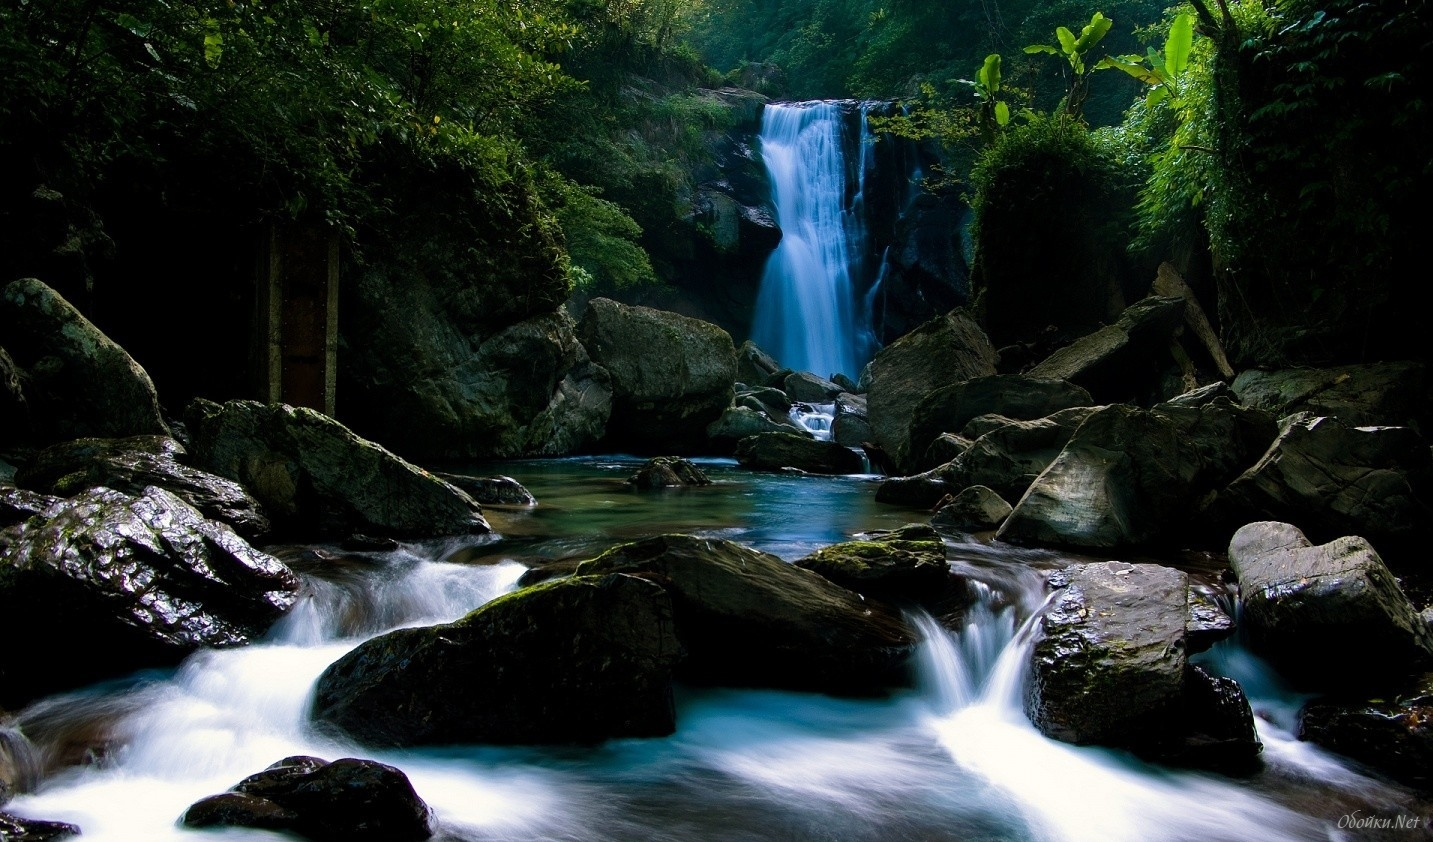 most beautiful waterfall HD Desktop Wallpaper HD Desktop Wallpaper 1433x842